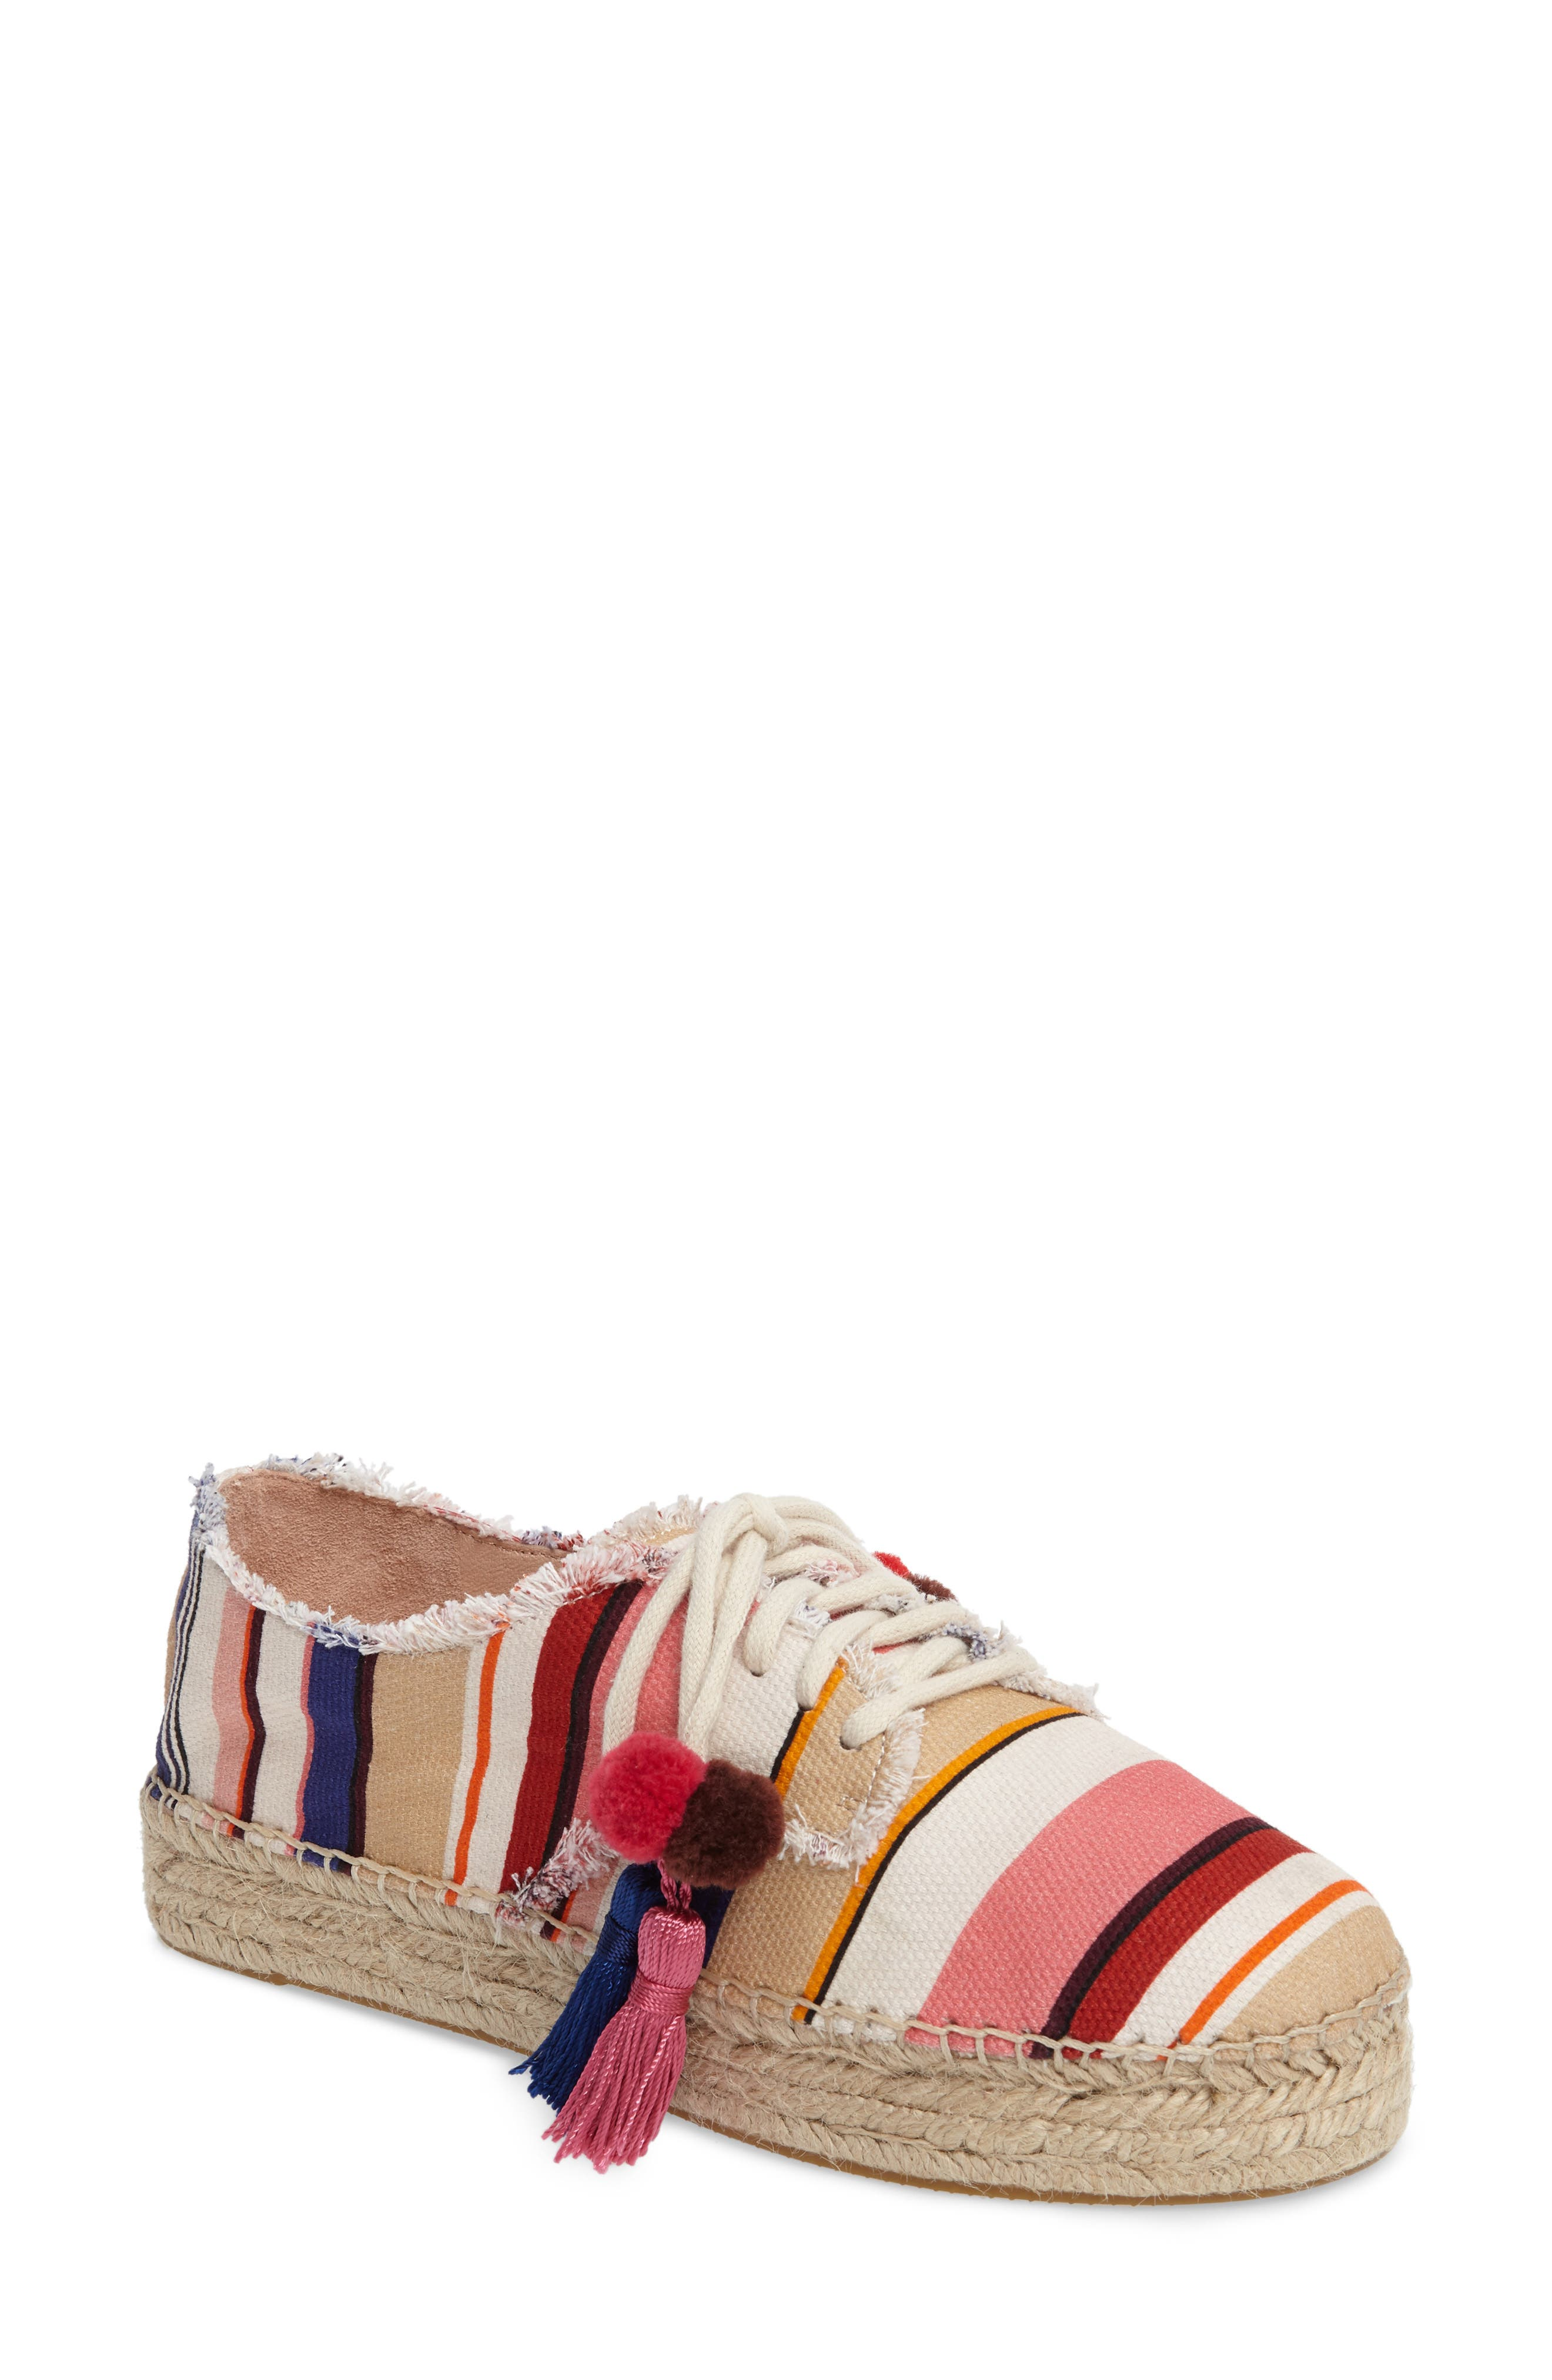 Alternate Image 1 Selected - kate spade new york lane espadrille platform sneaker (Women)